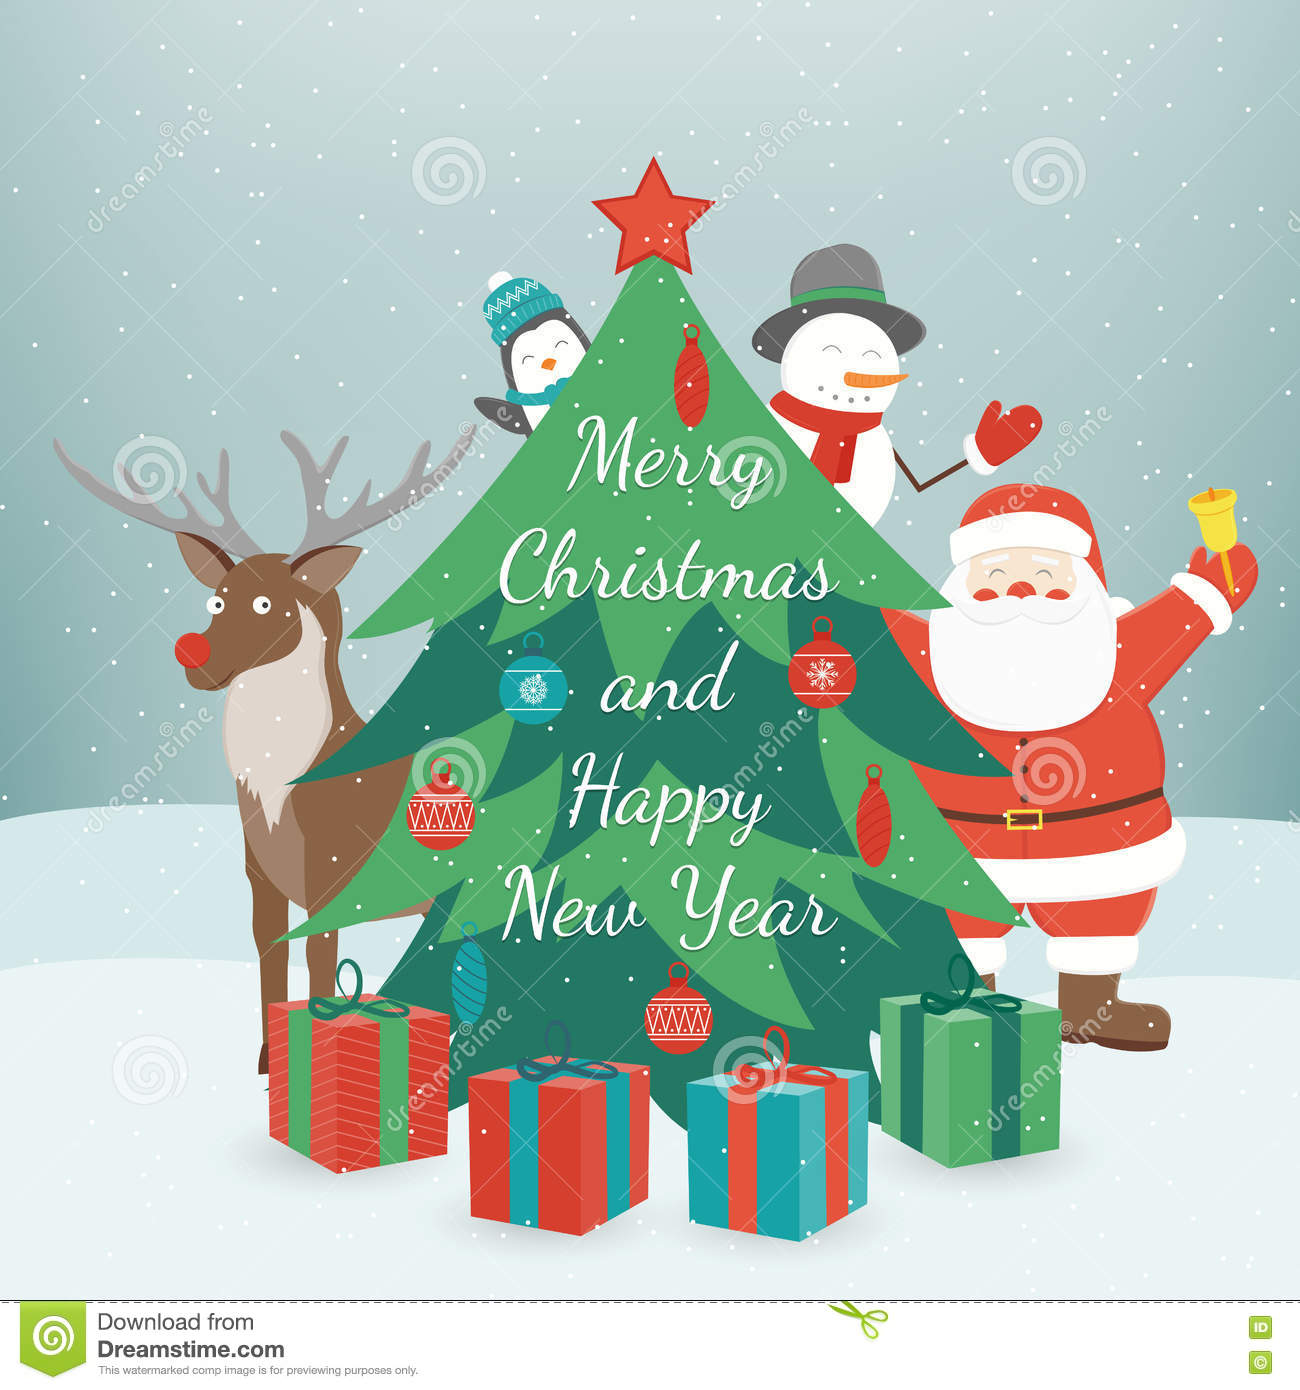 download greeting christmas and new year card merry christmas and happy new year wishes